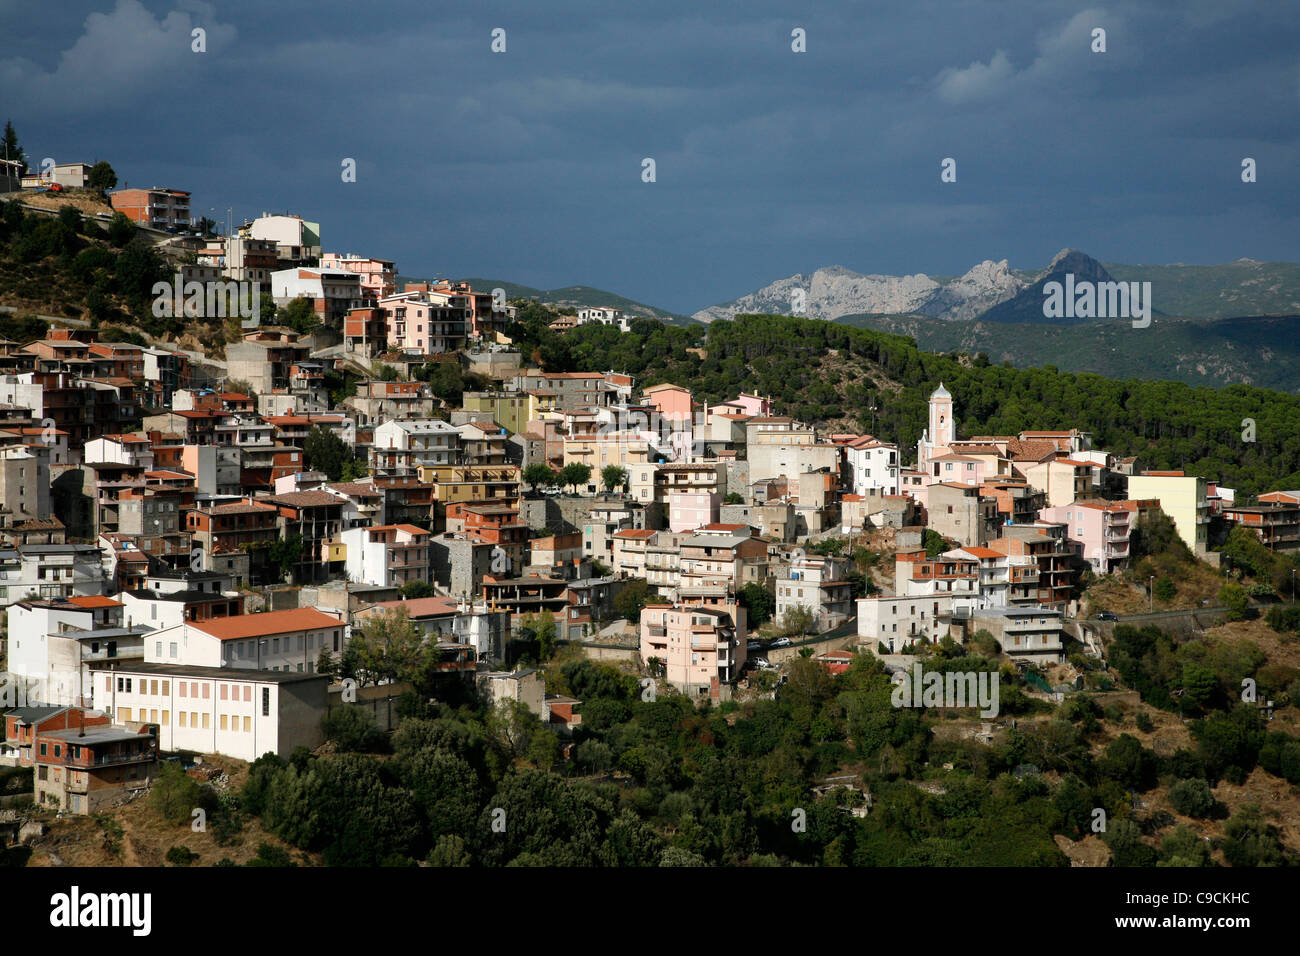 View over Talana village and the Gennargentu mountain range, Sardinia, Italy. - Stock Image